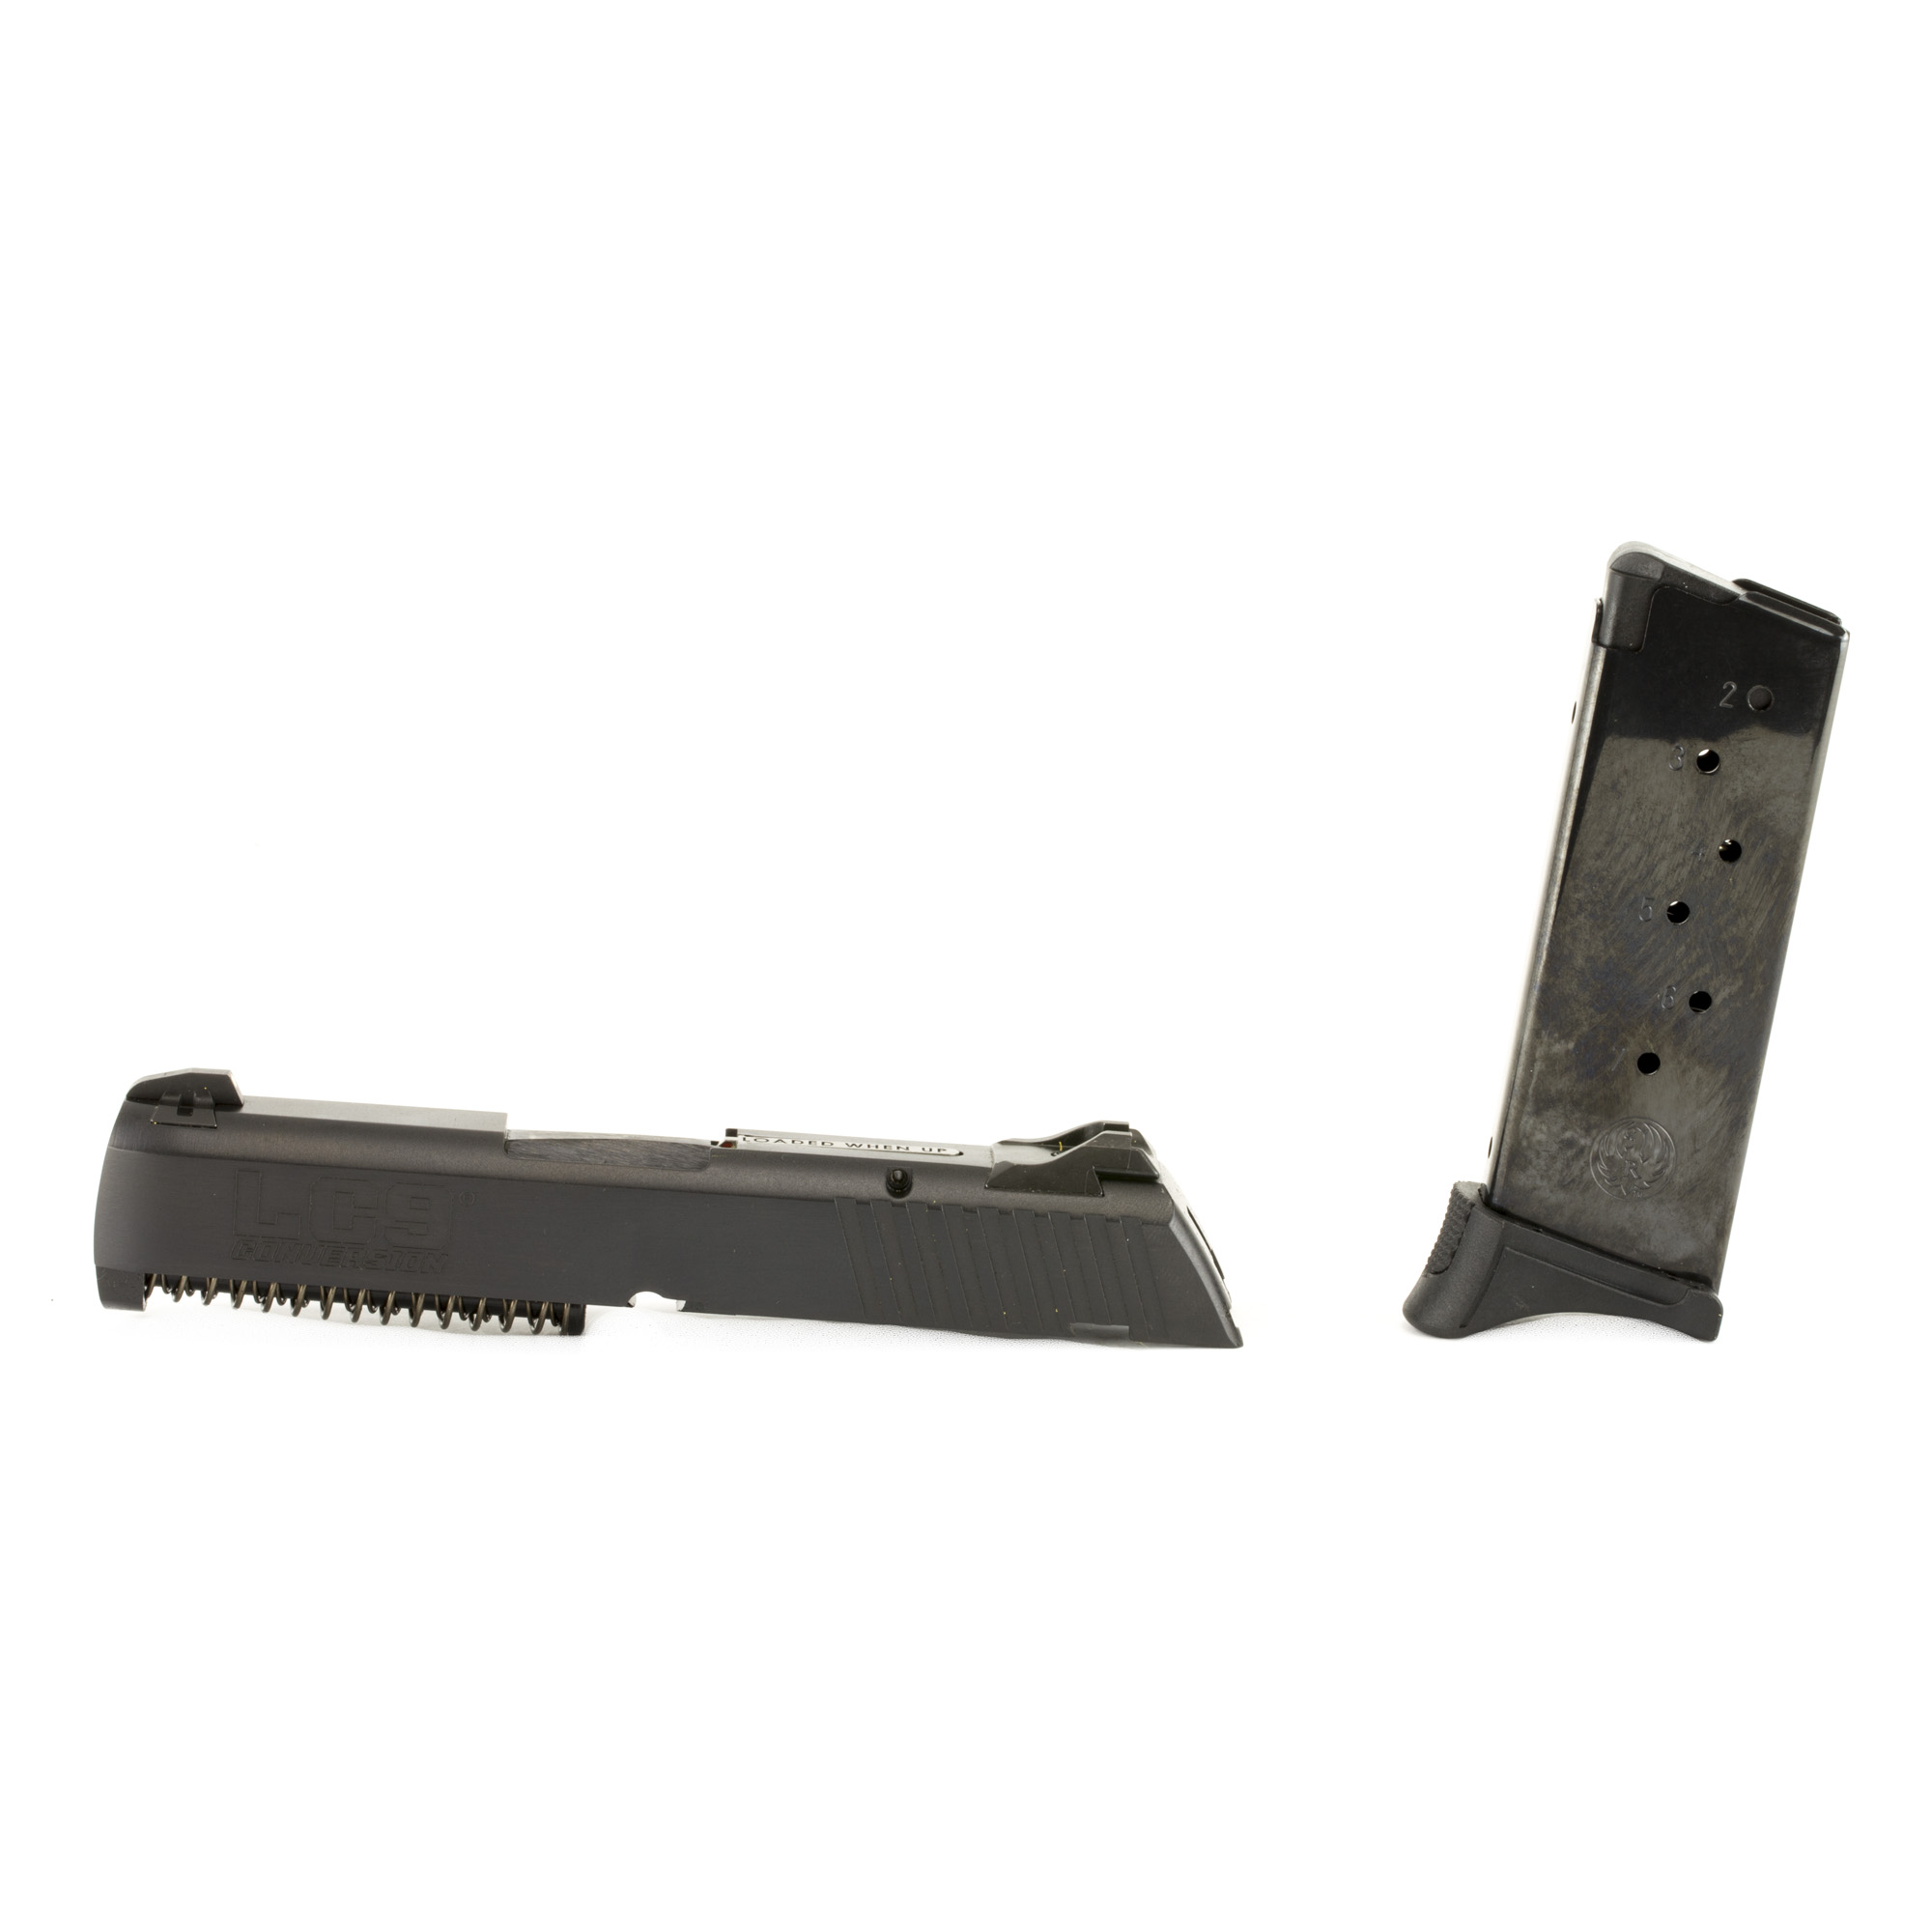 Ruger Lc380 Conv Kit 380 To 9mm